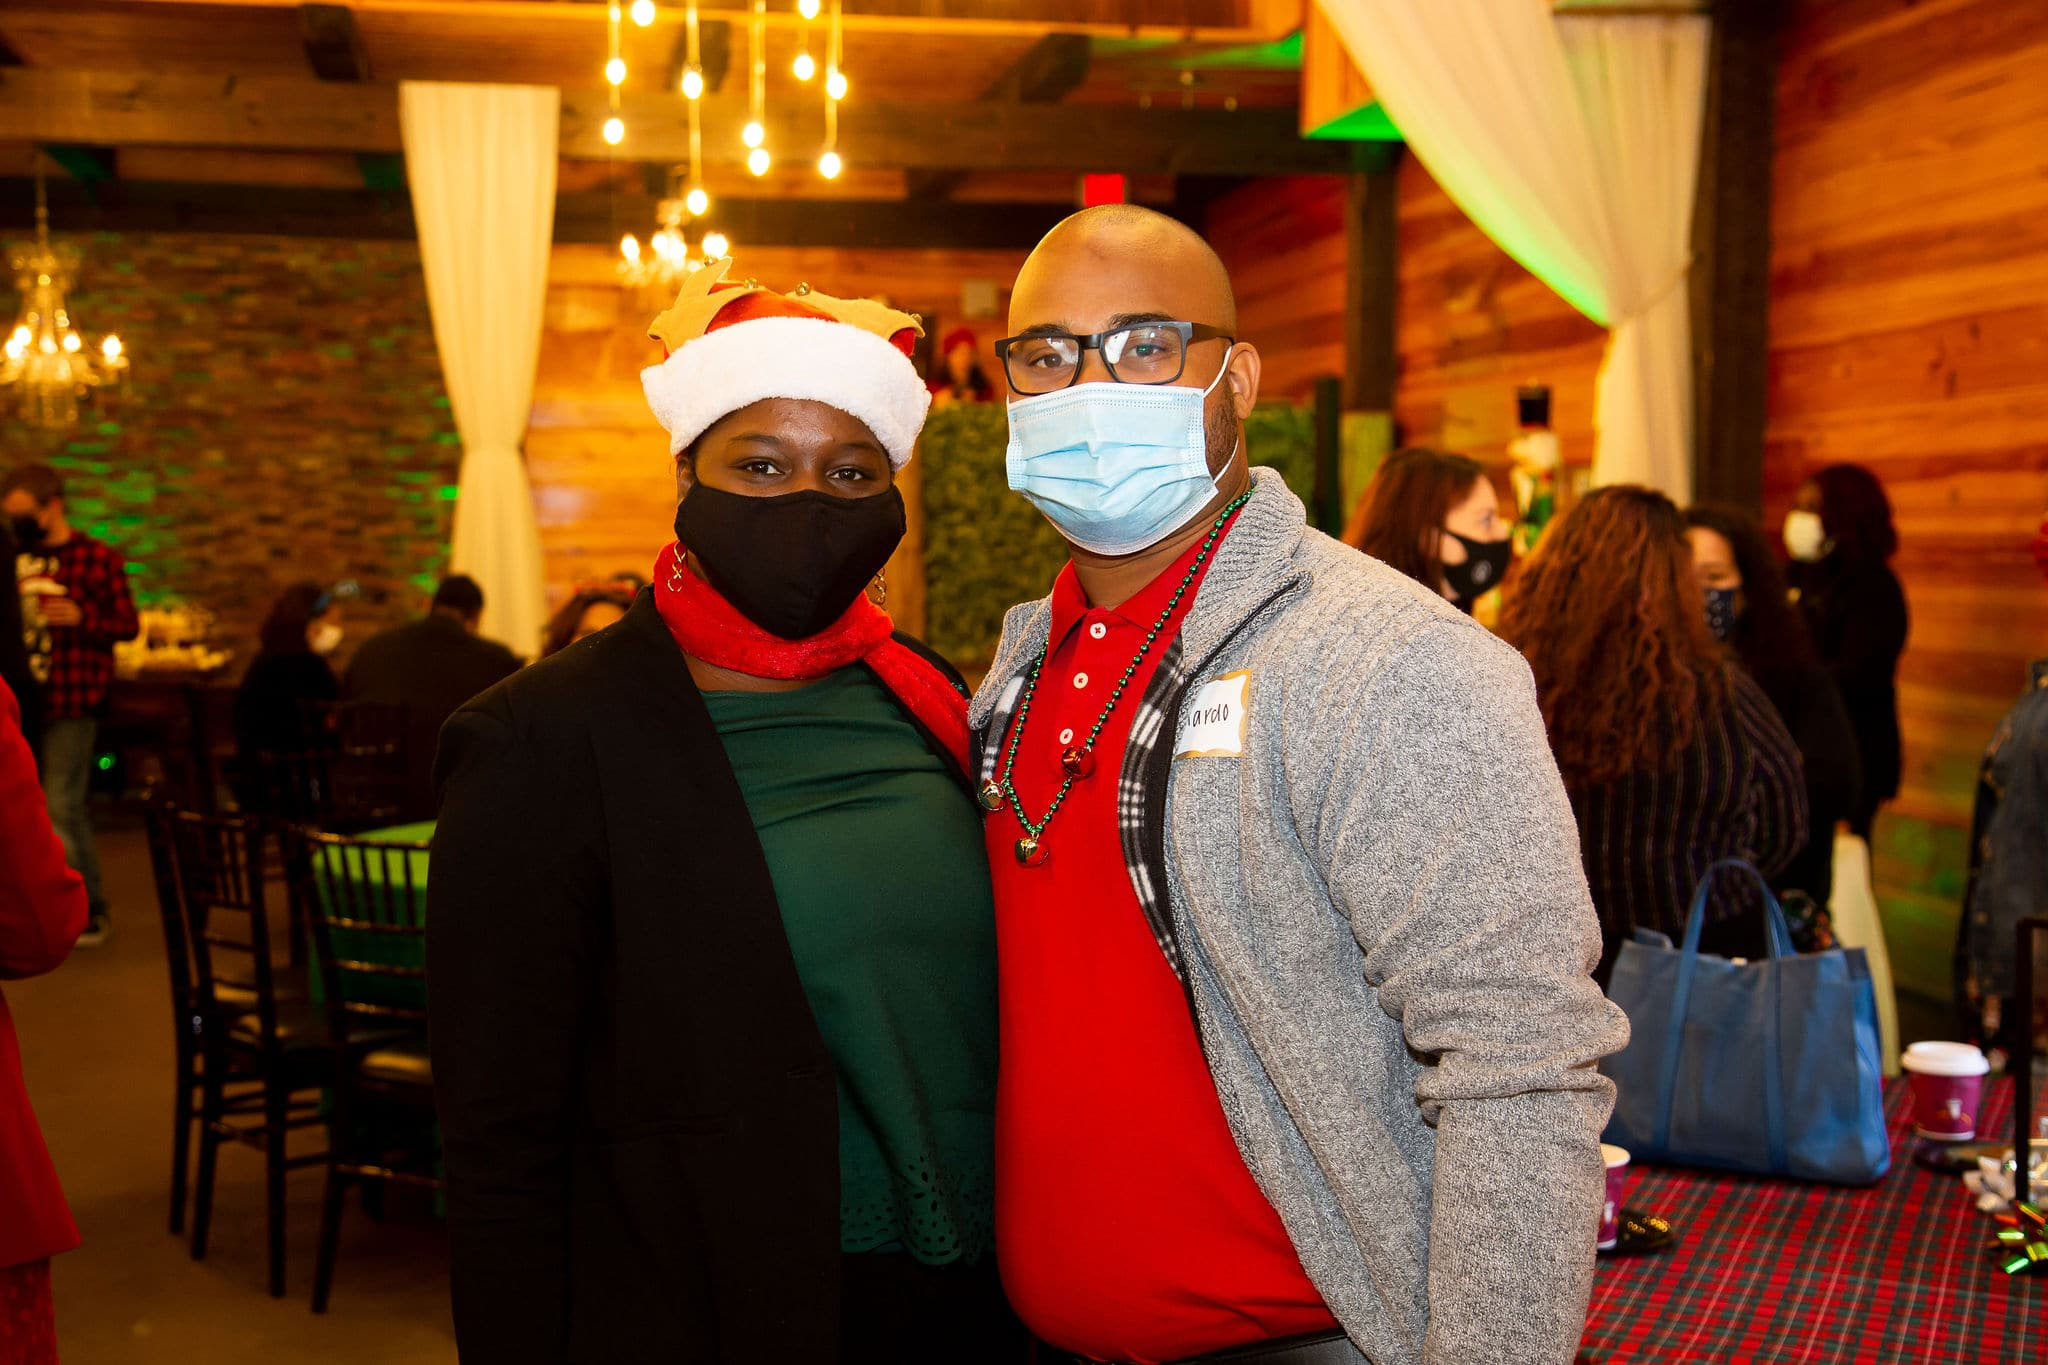 man wearing red polo and grey jacket stands next to woman wearing red scarf green shirt and black sweater both wearing face masks